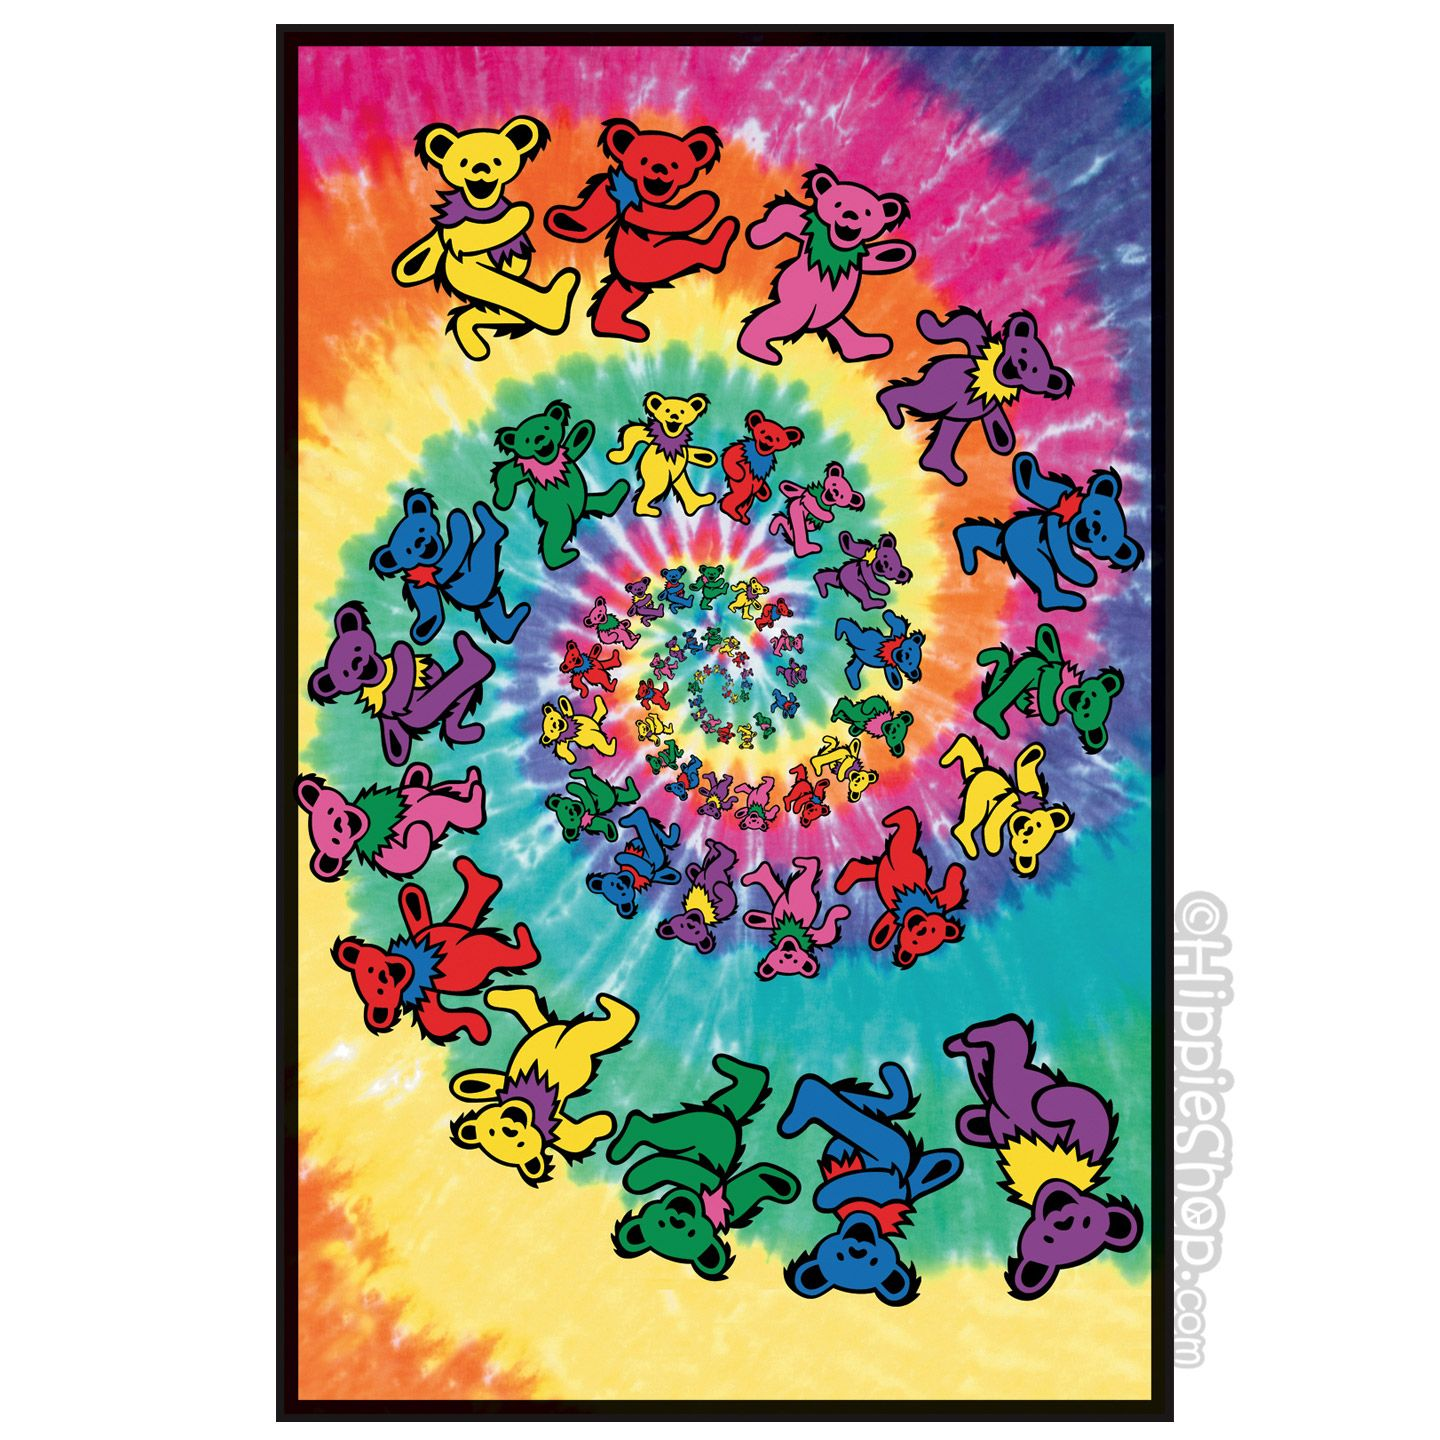 grateful dead spiral bear black light poster on sale for 9 99